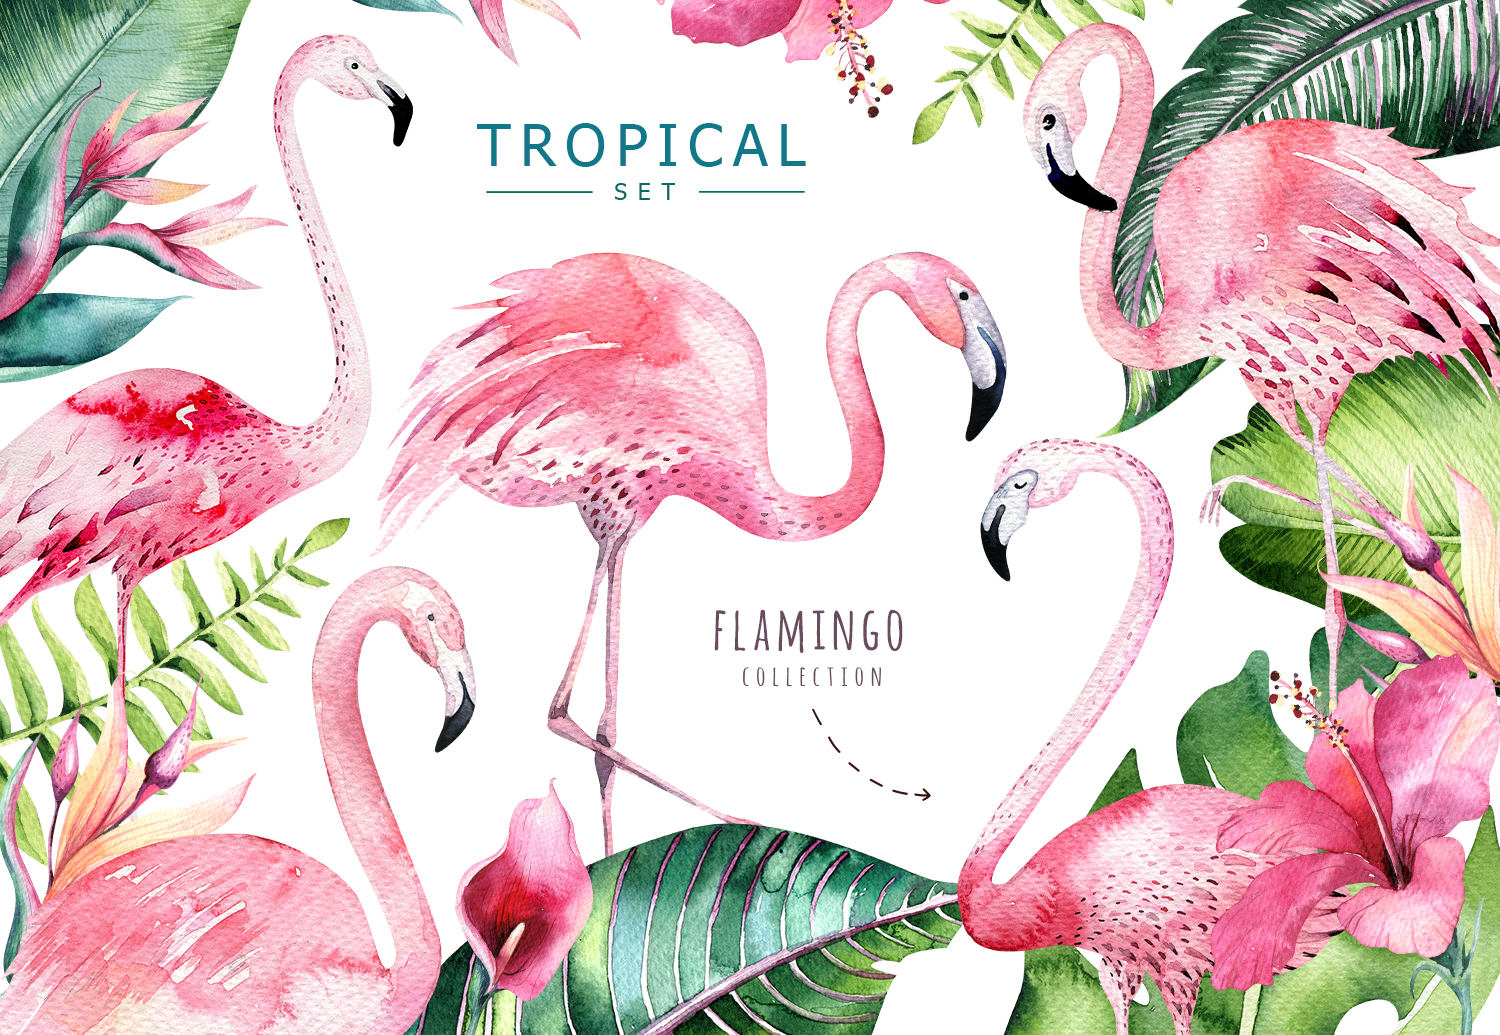 Tropical set II. Flamingo collection example image 1